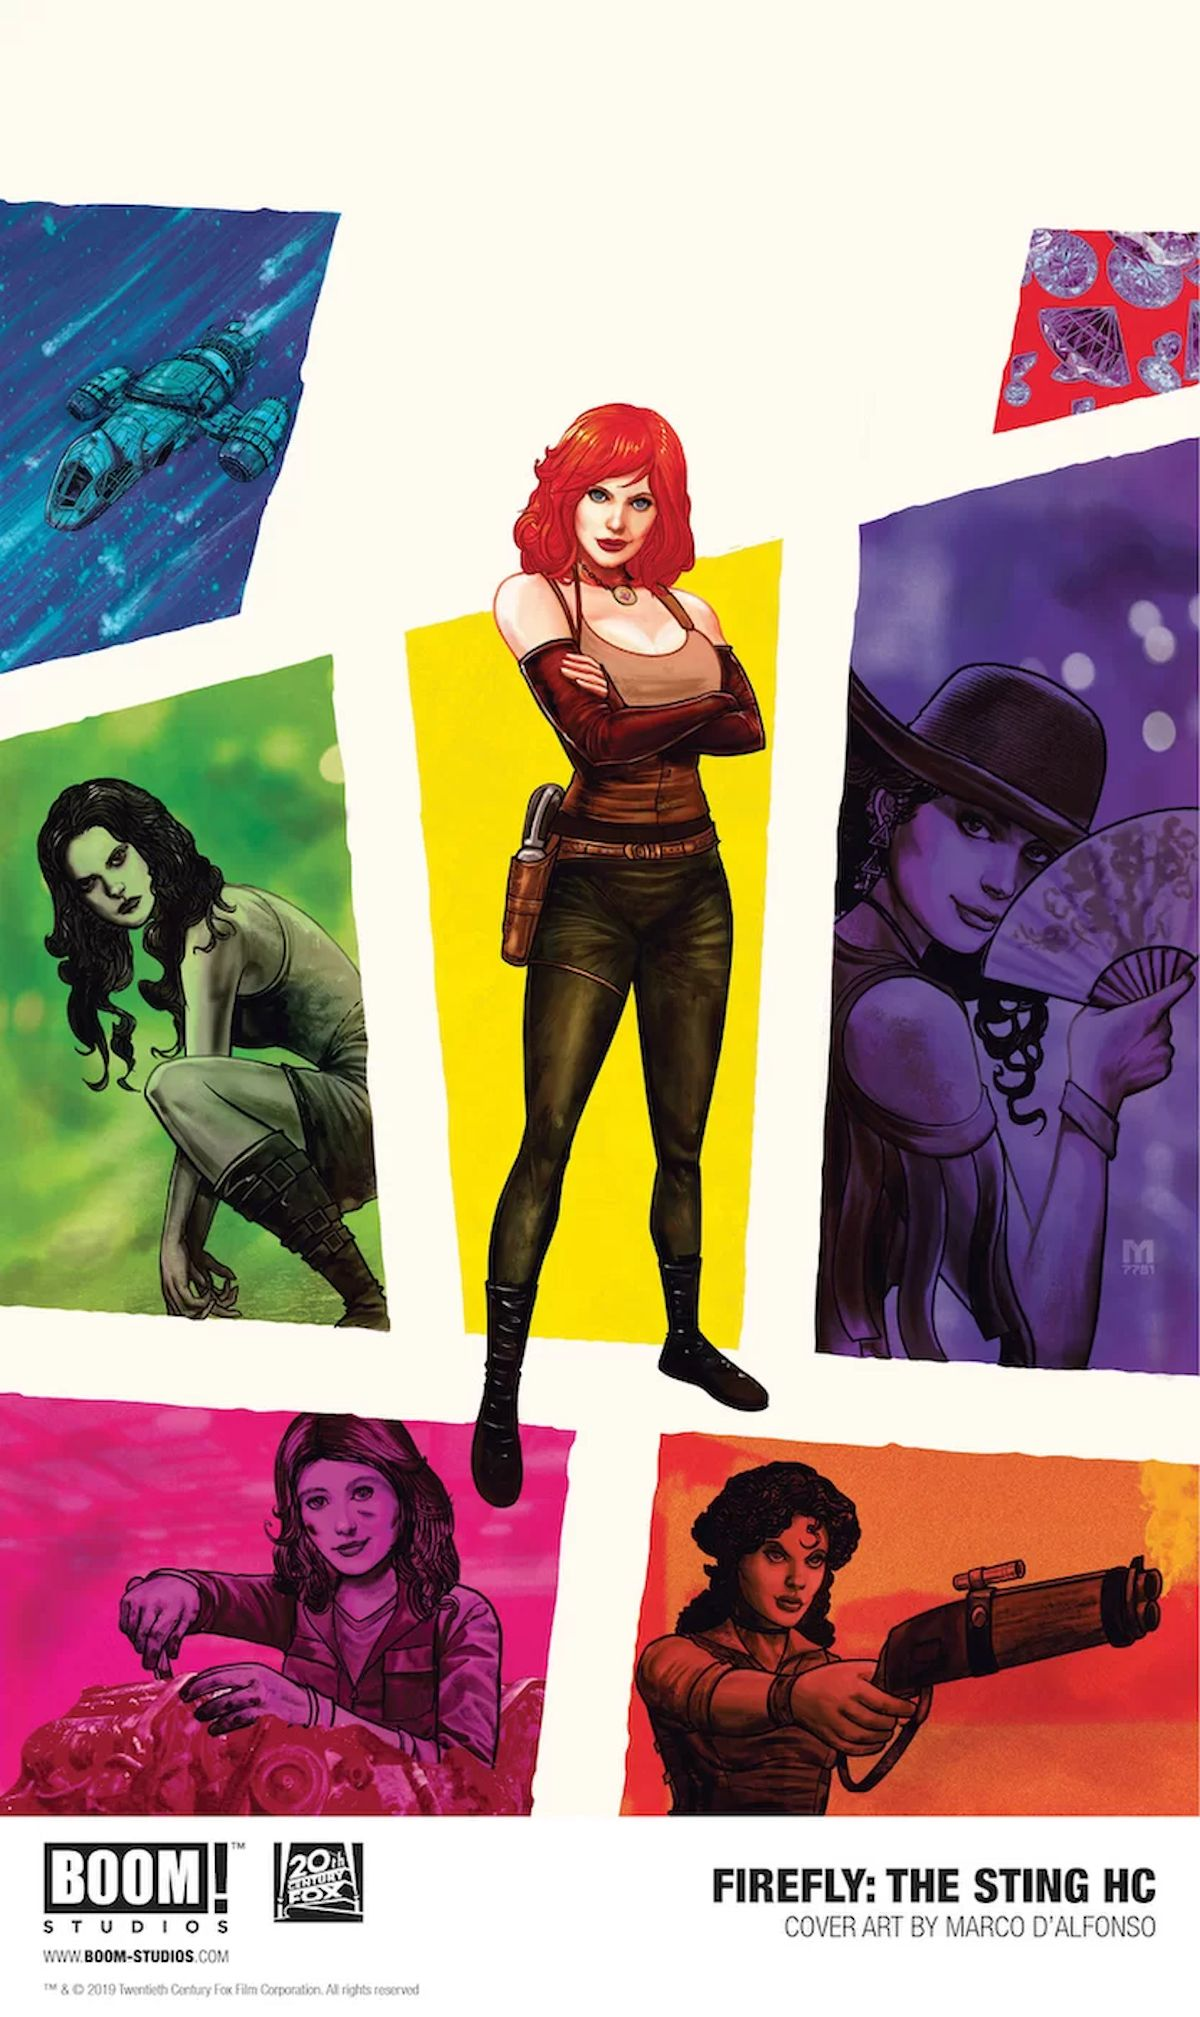 Firefly: The Sting (Graphic Novel)